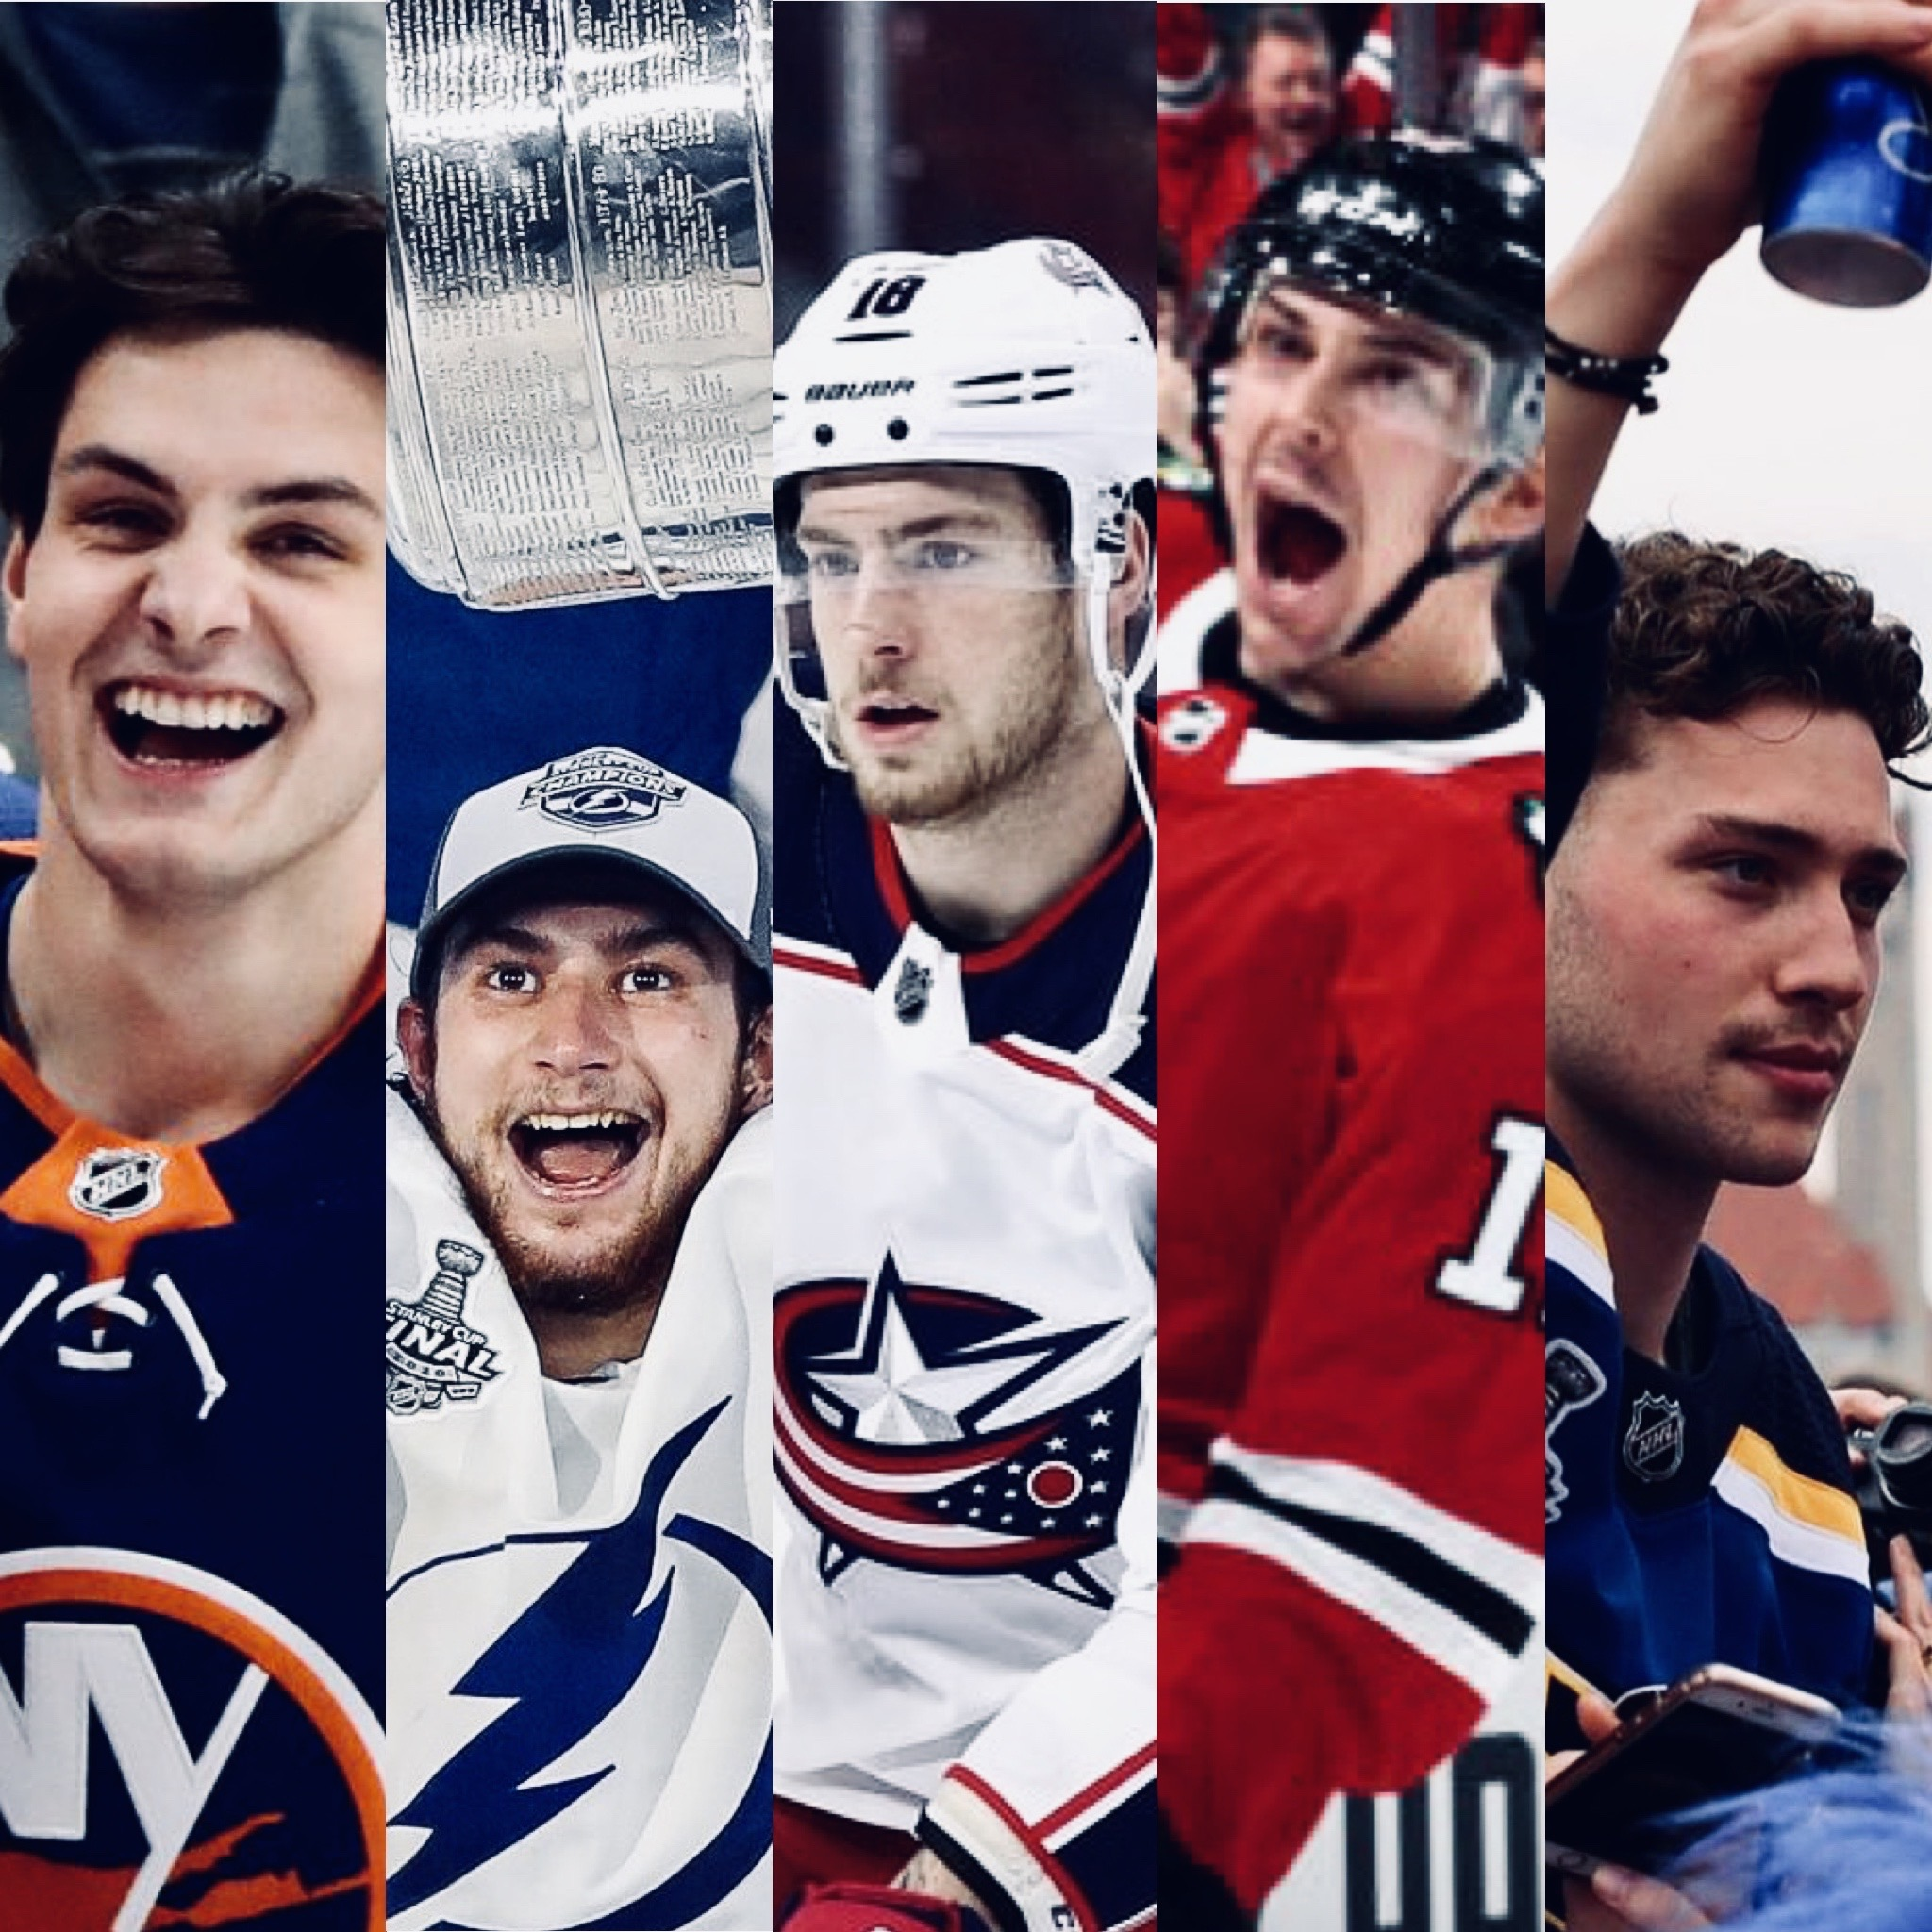 NHL's Top 5 RFA's of 2020